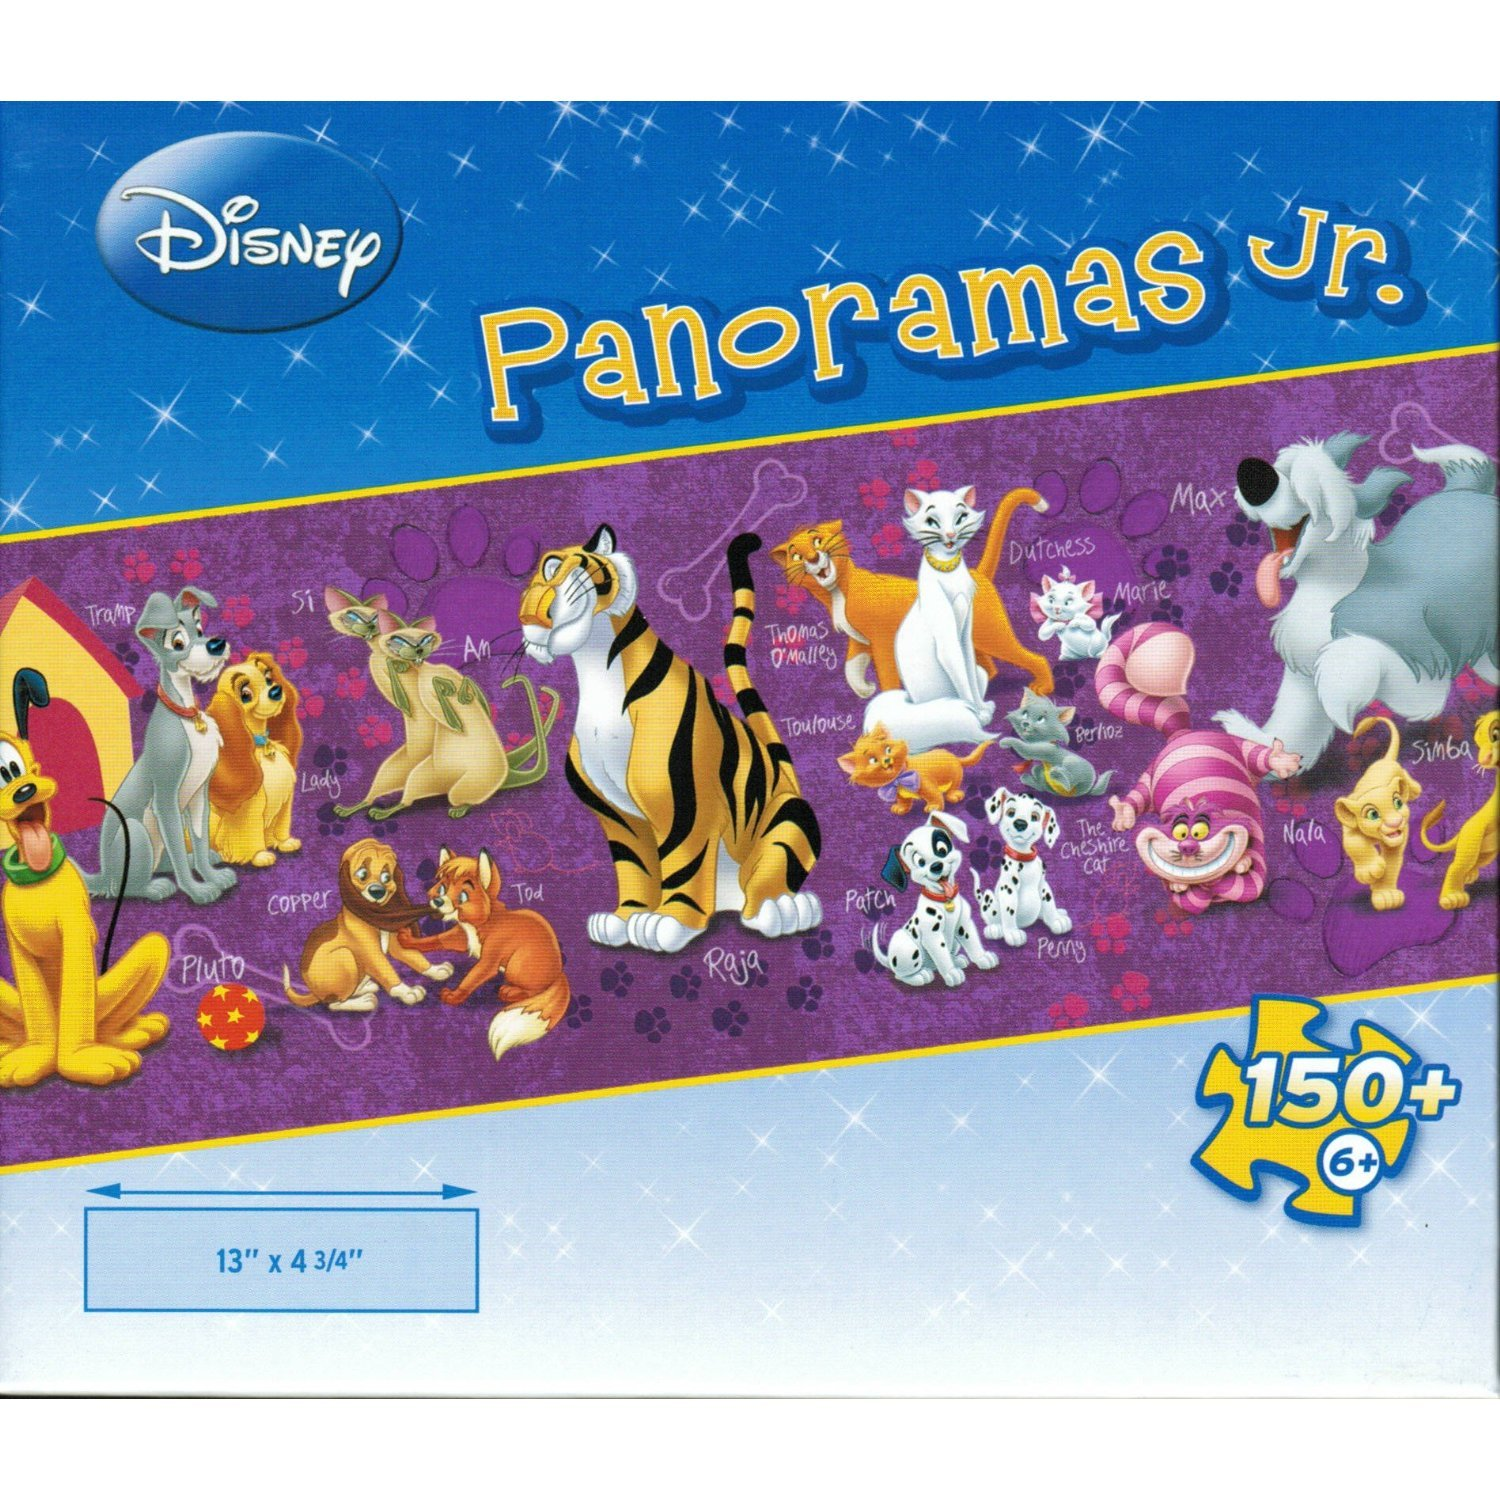 Disney Animals Panoramas Jr. Puzzle